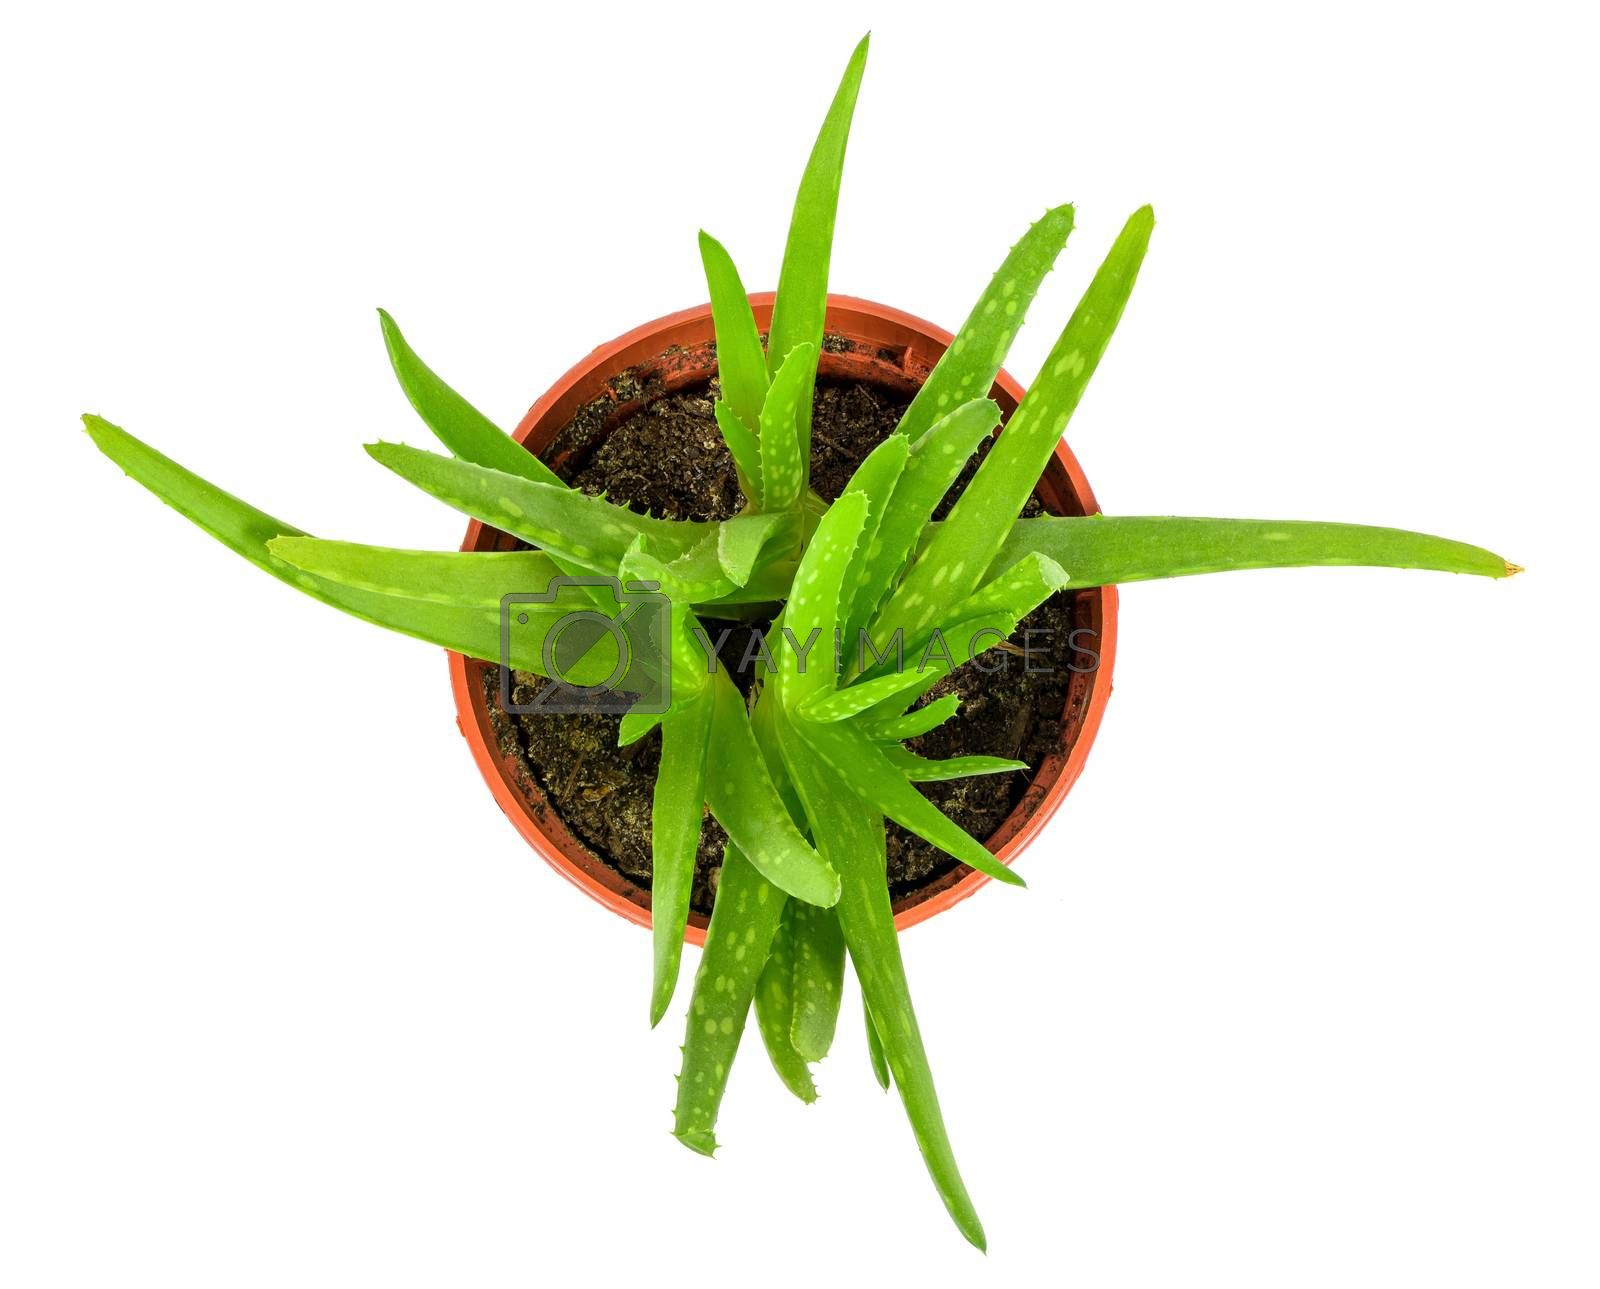 Top view of aloe plant in a pot isolated on white background with clipping path